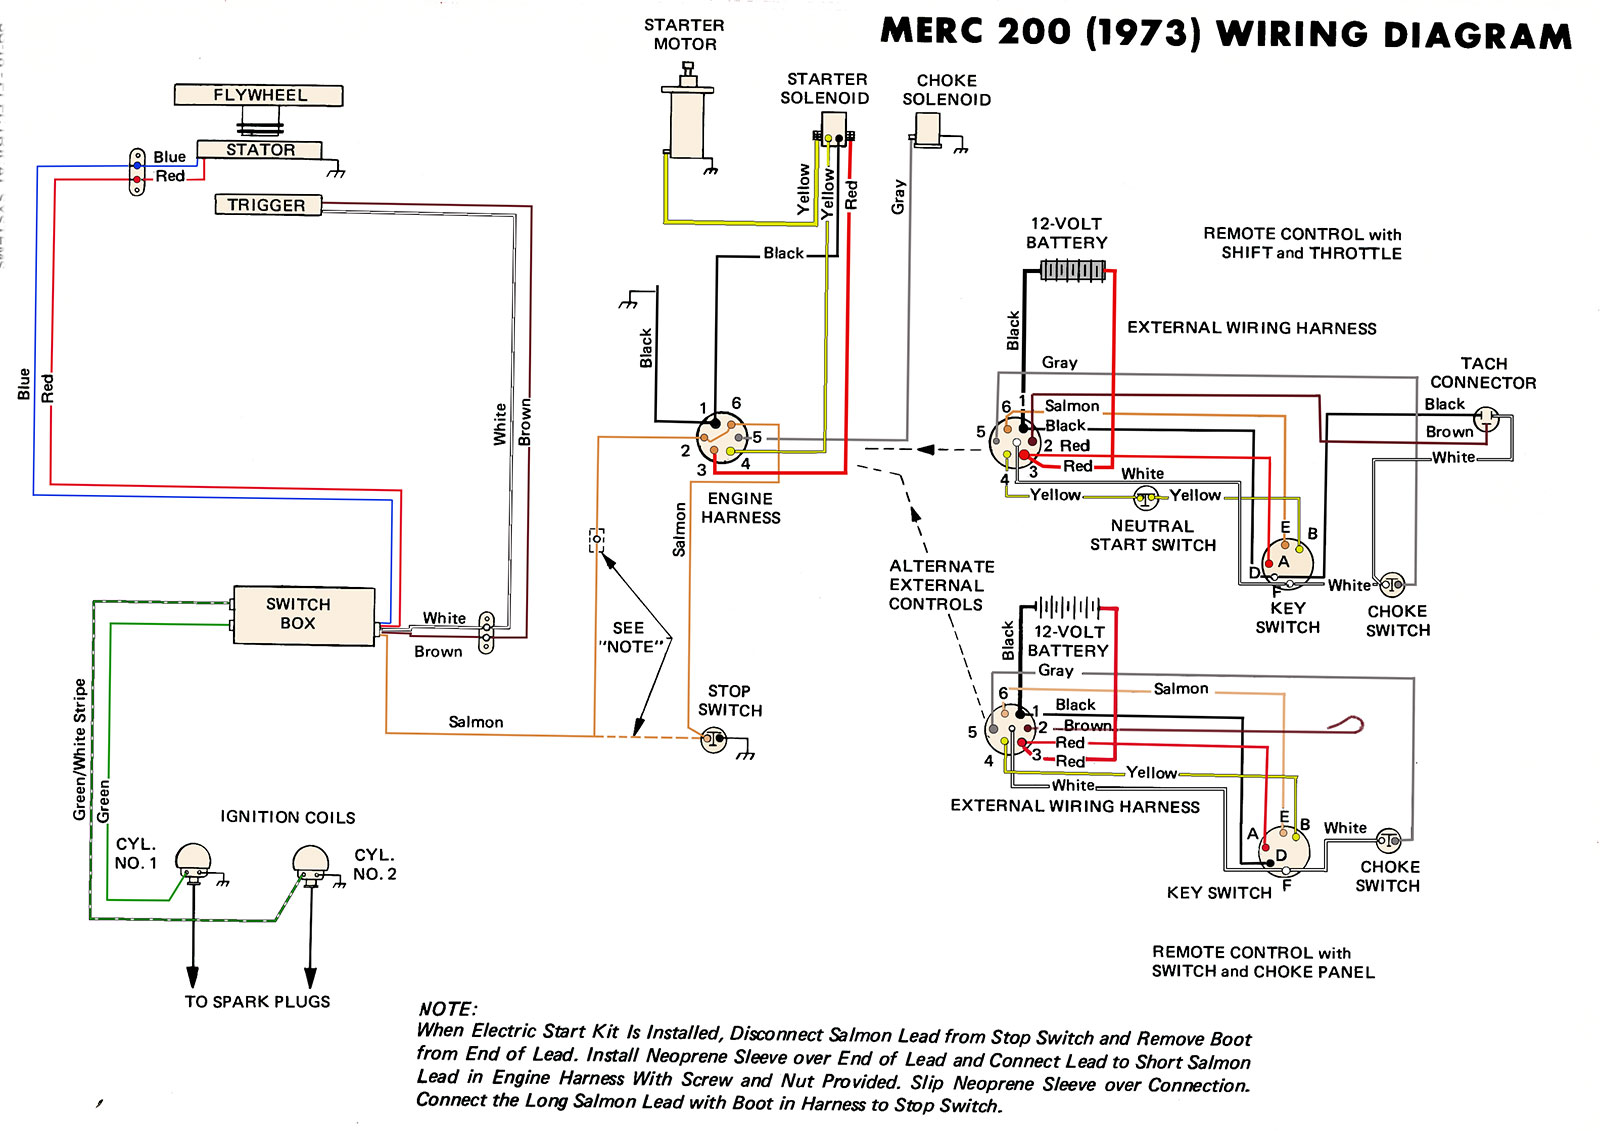 mercury 6 5 hp wiring diagram group electrical schemes mercury outboard tachometer wiring diagram mercury 85 hp wiring diagram wiring